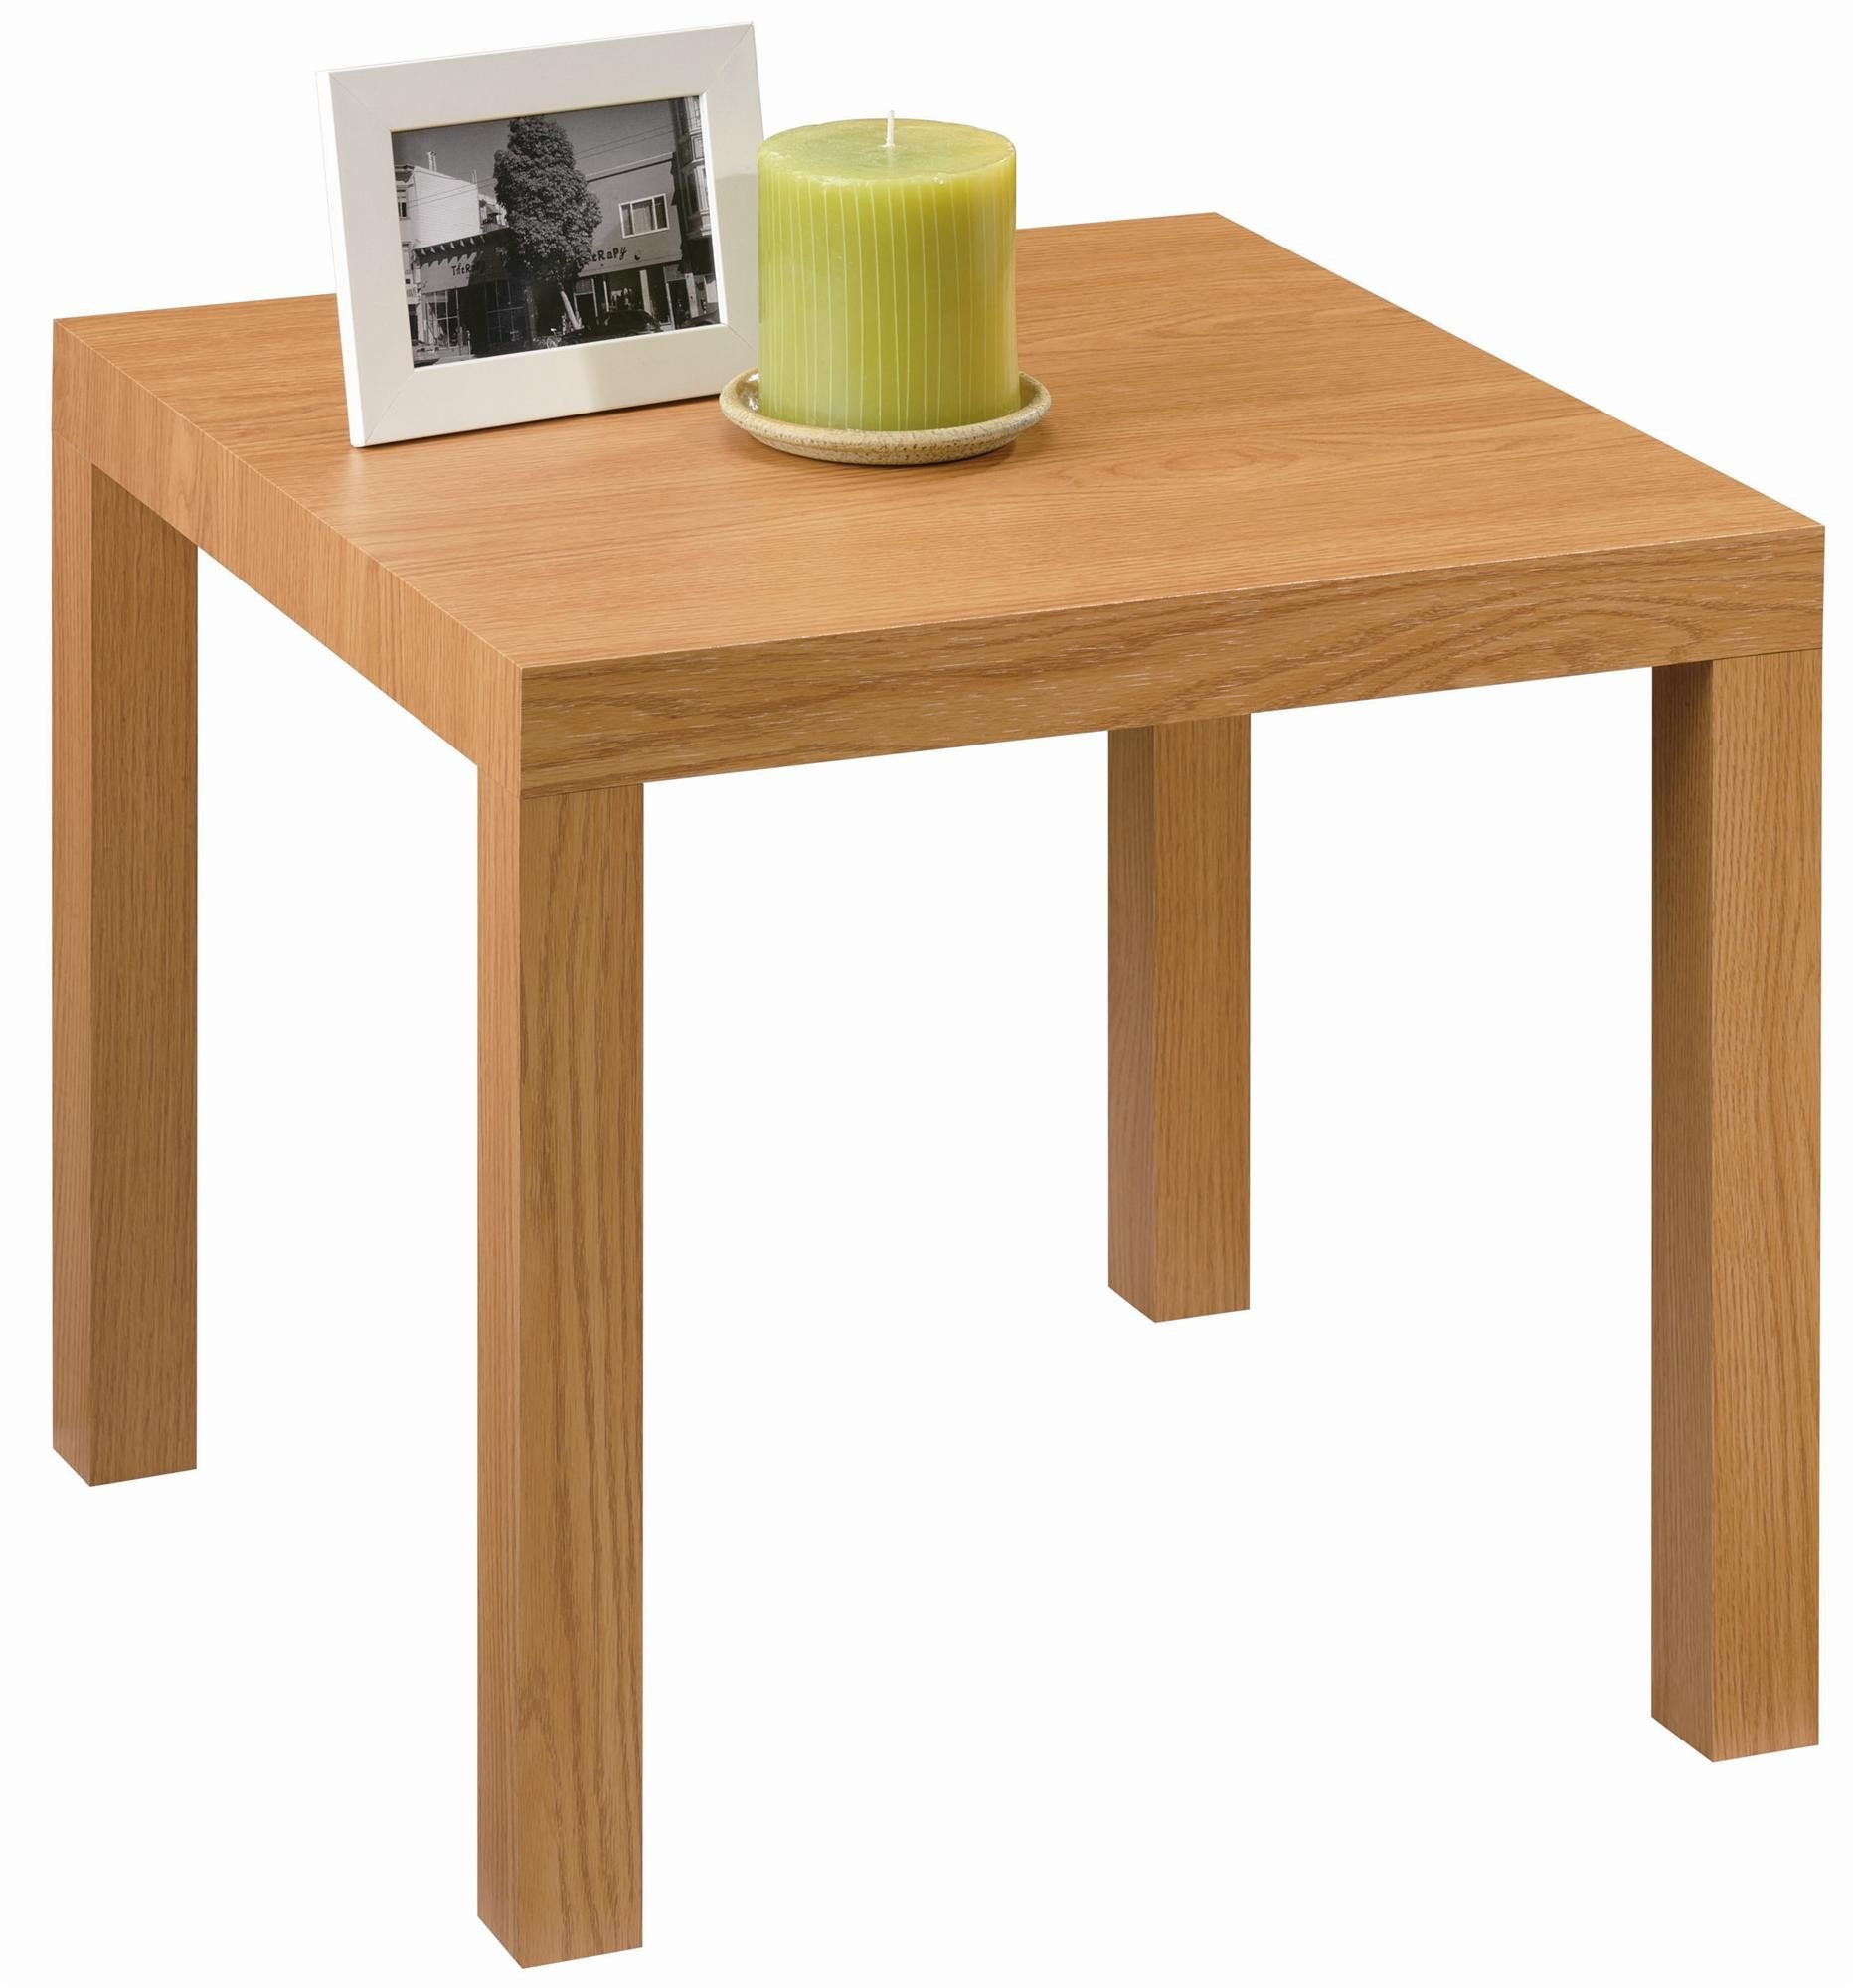 DHP Parsons Modern End Table, Multi-use and Toolless Assembly, Natural Stain